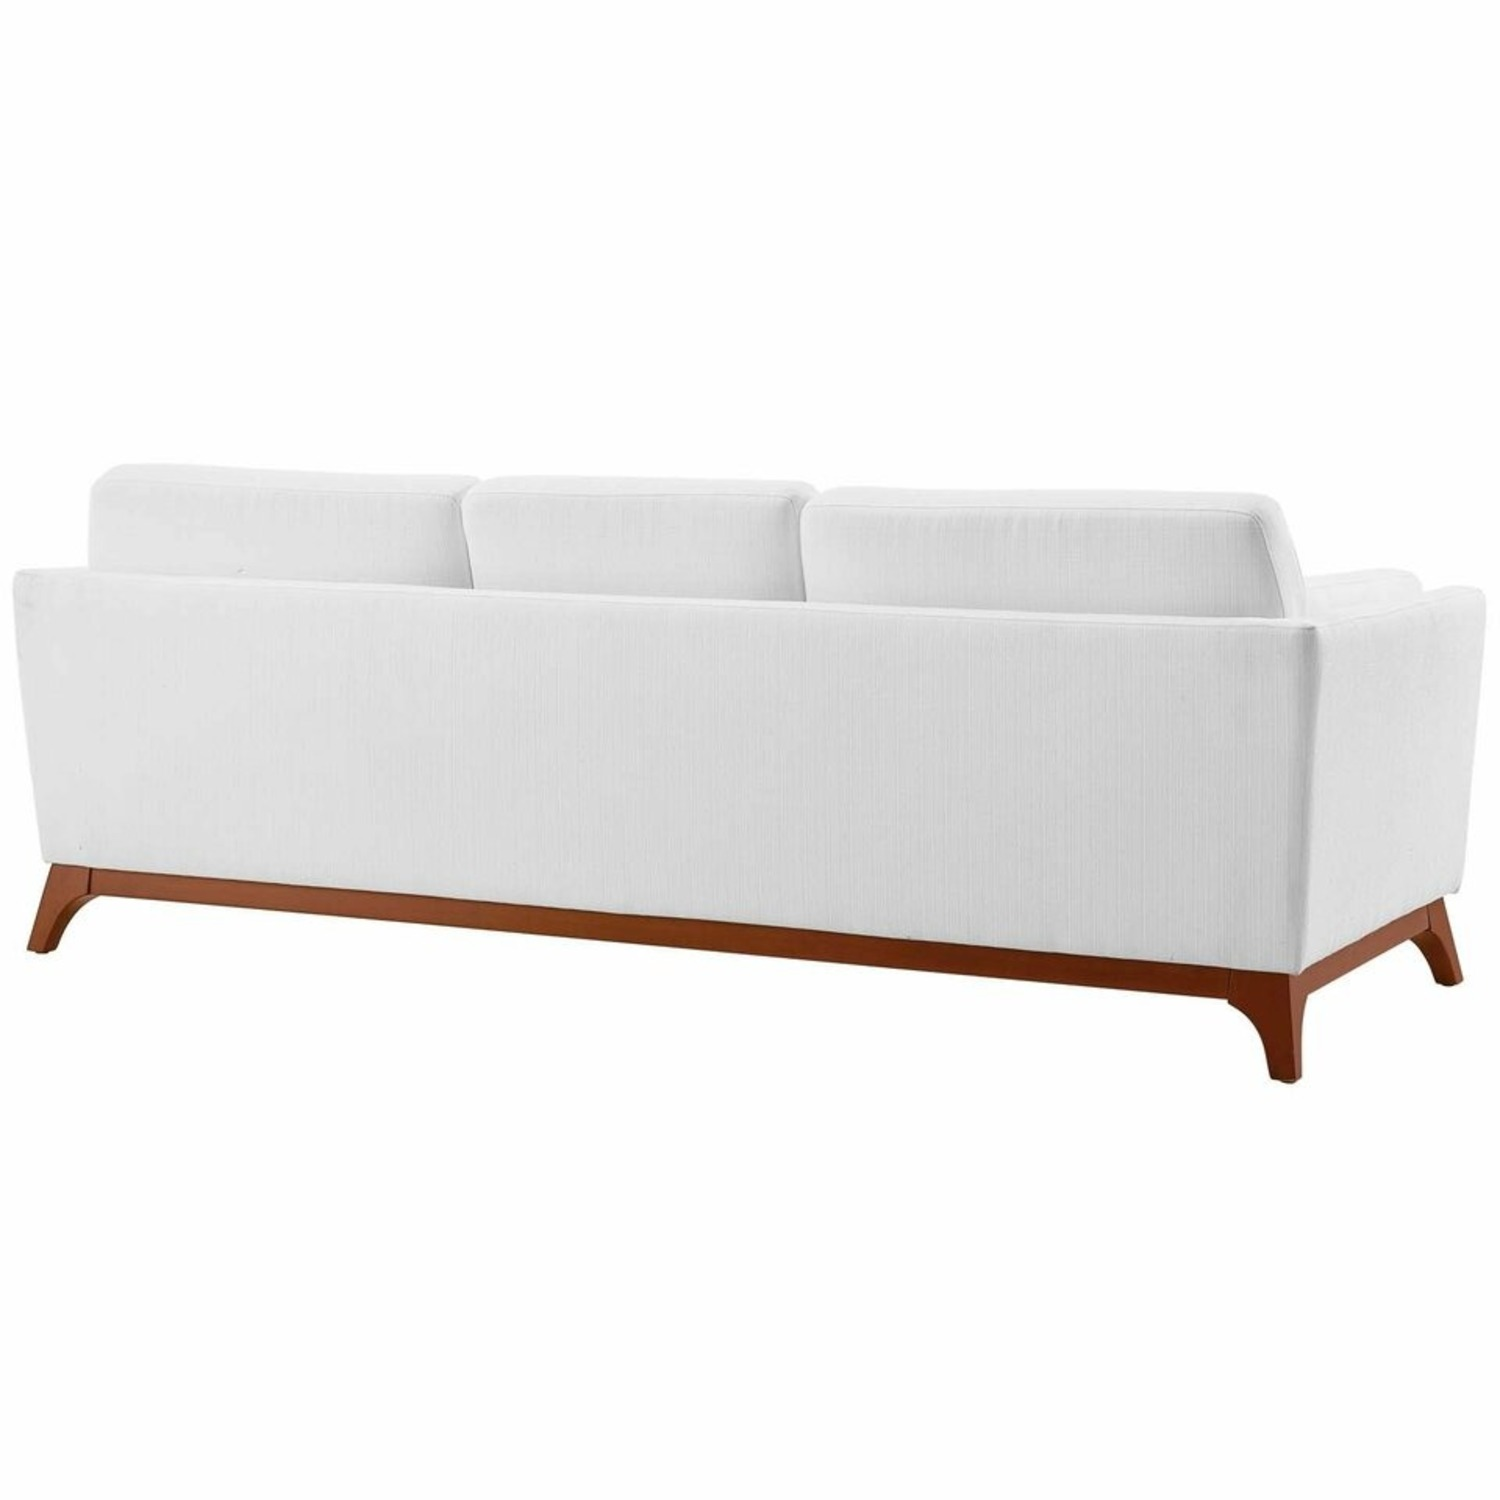 Sofa In White Fabric W/ Solid Wood Frame - image-2